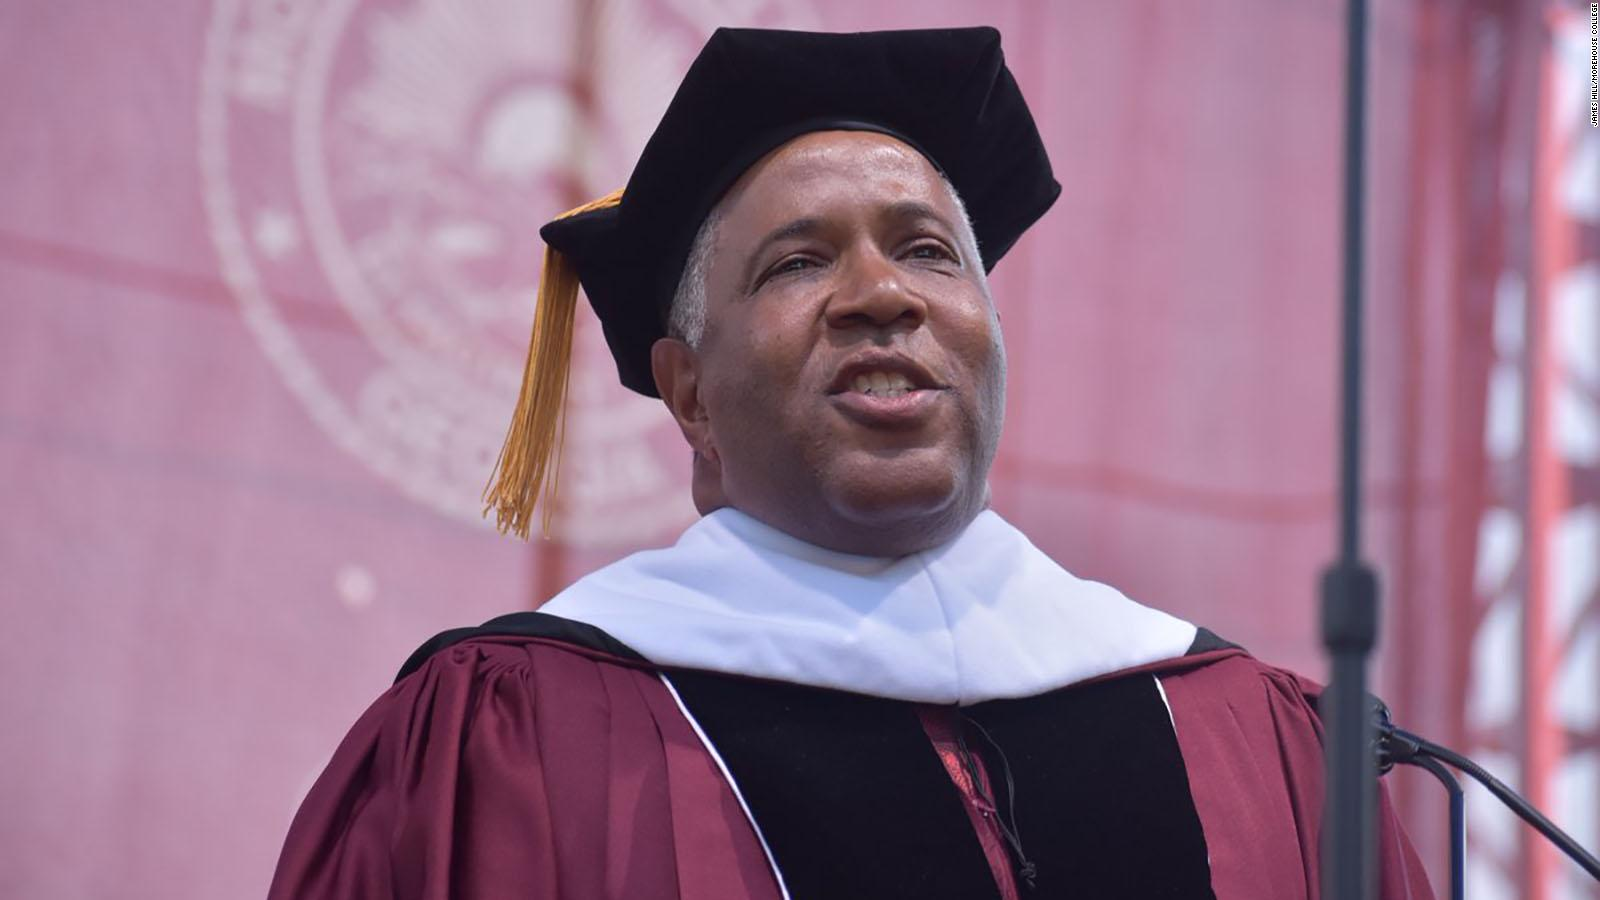 190519133009-03-robert-f-smith-morehouse-commencement-full-169[1].jpg